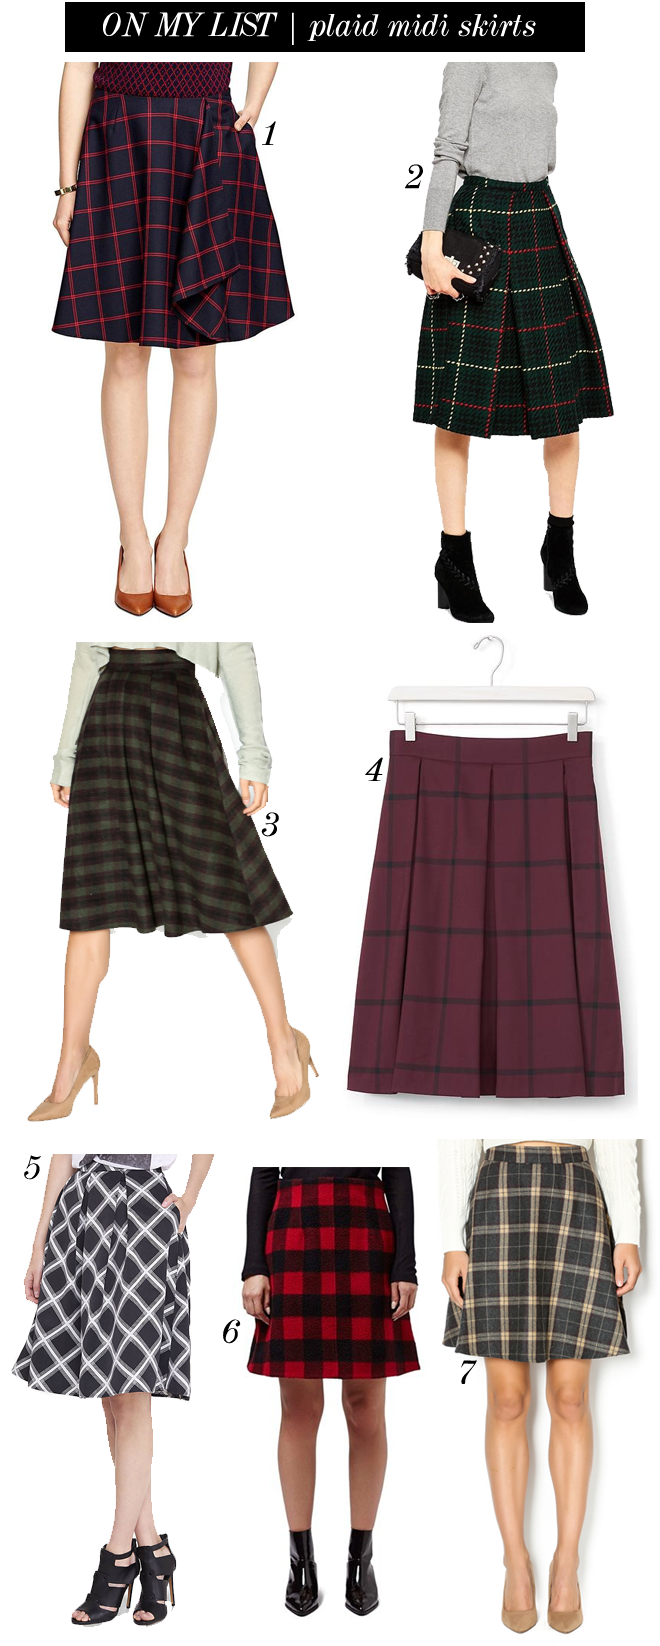 on my list plaid midi skirts